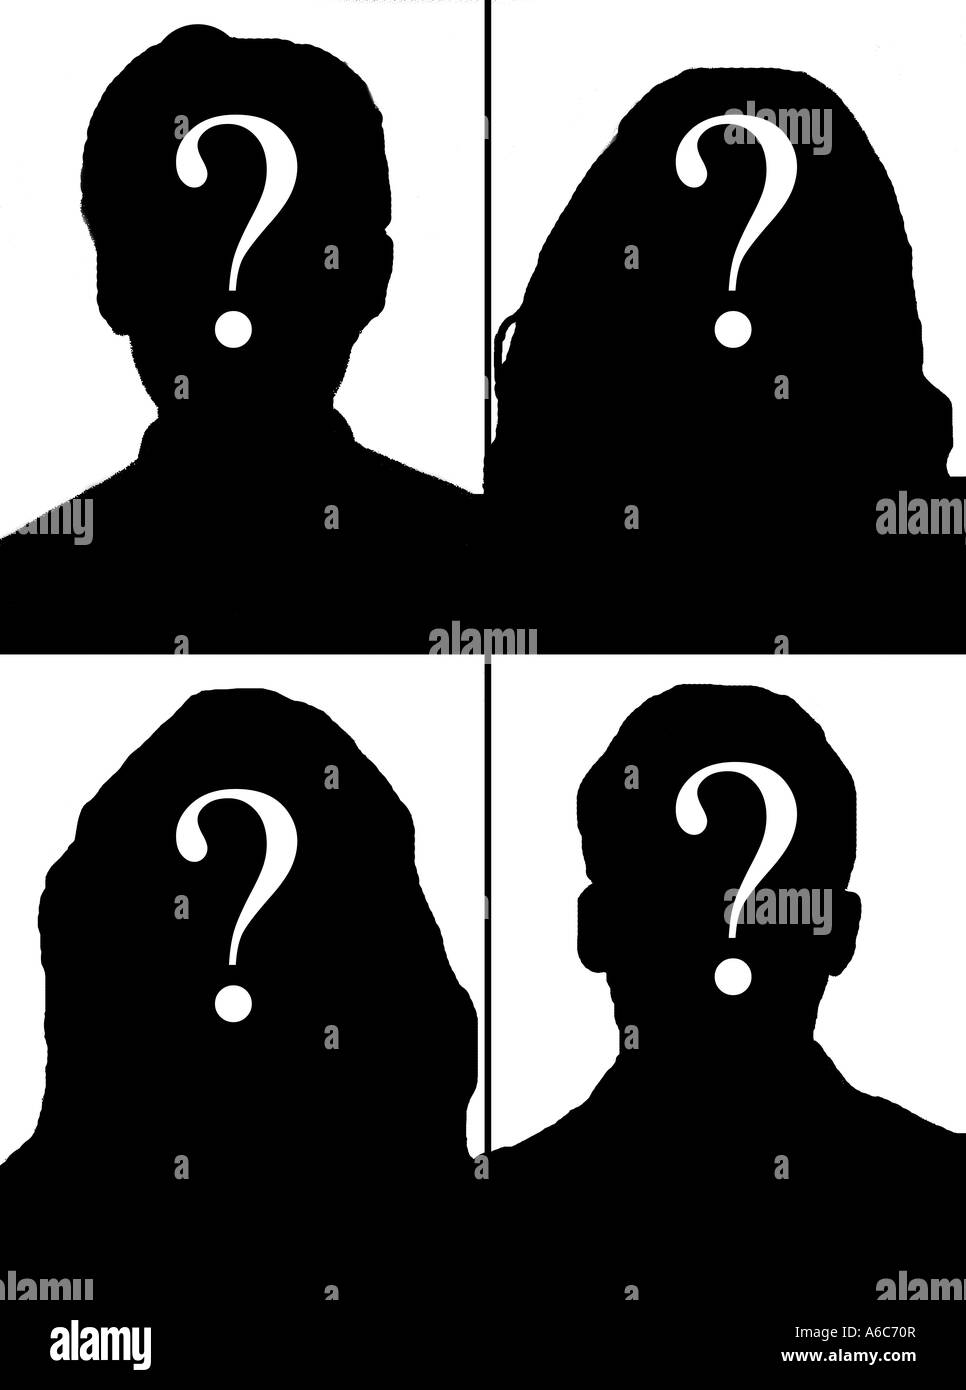 Image result for silhouette of people with question marks over their heads